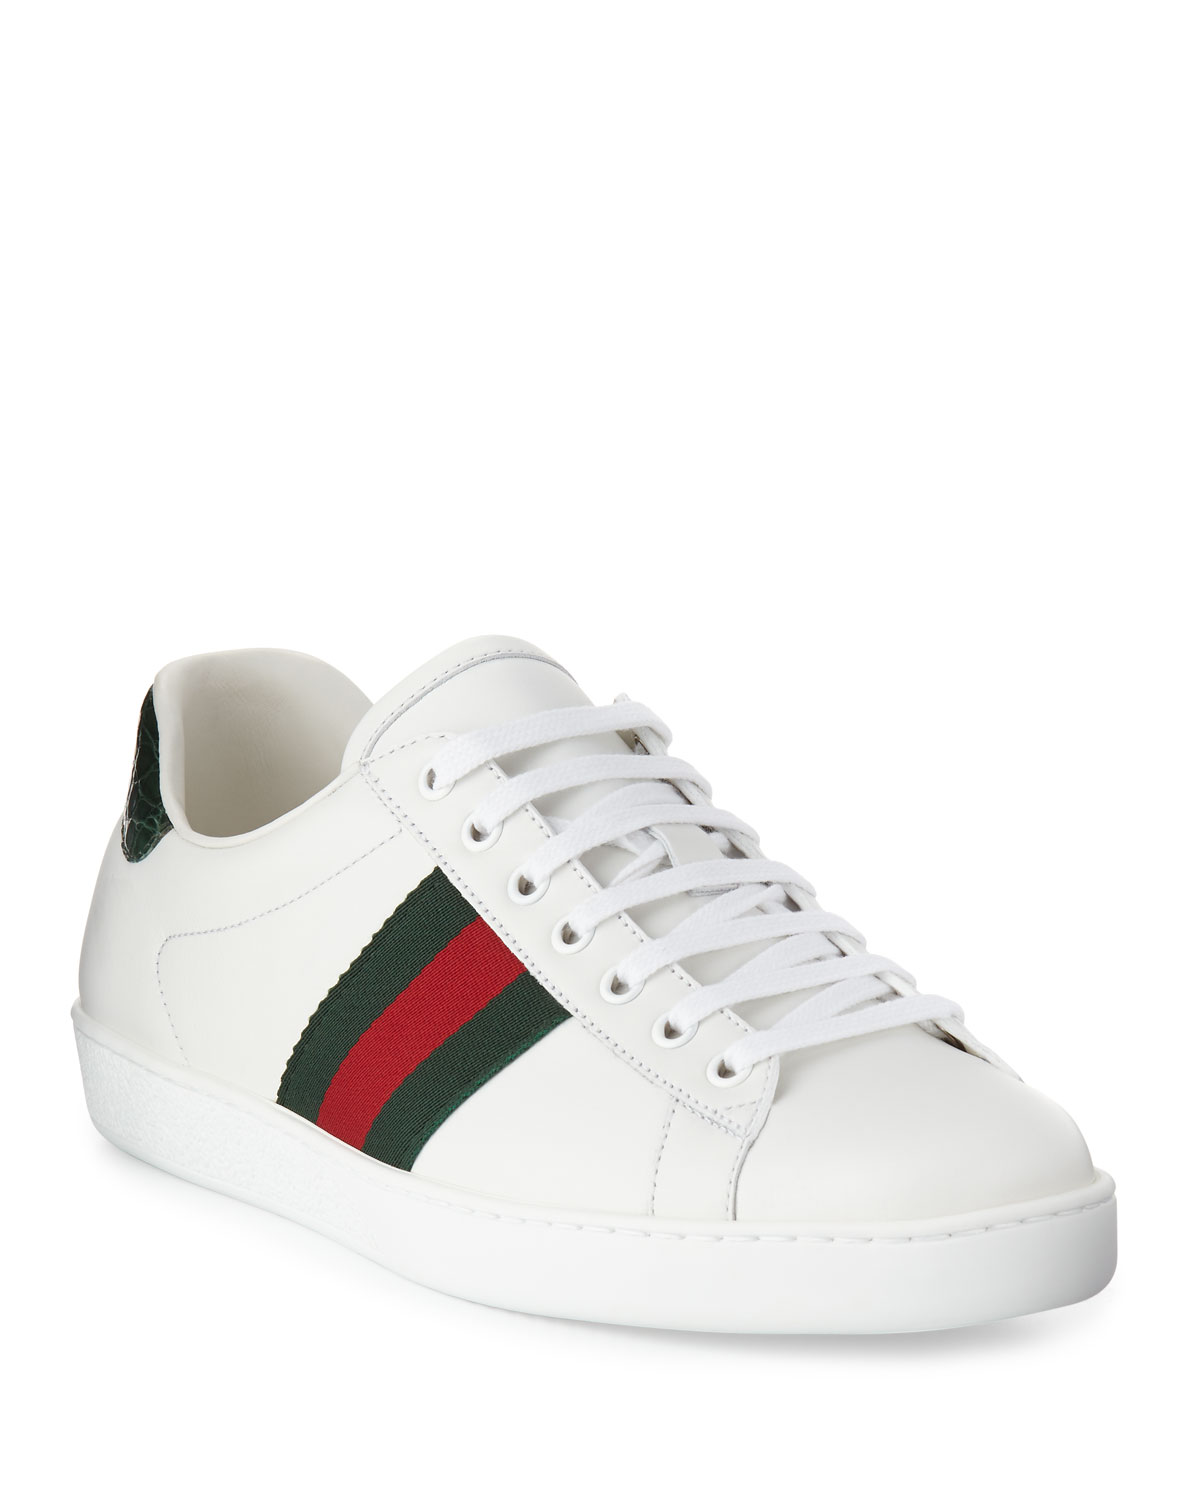 cb79046e1d4 Gucci Men s New Ace Leather Low-Top Sneakers